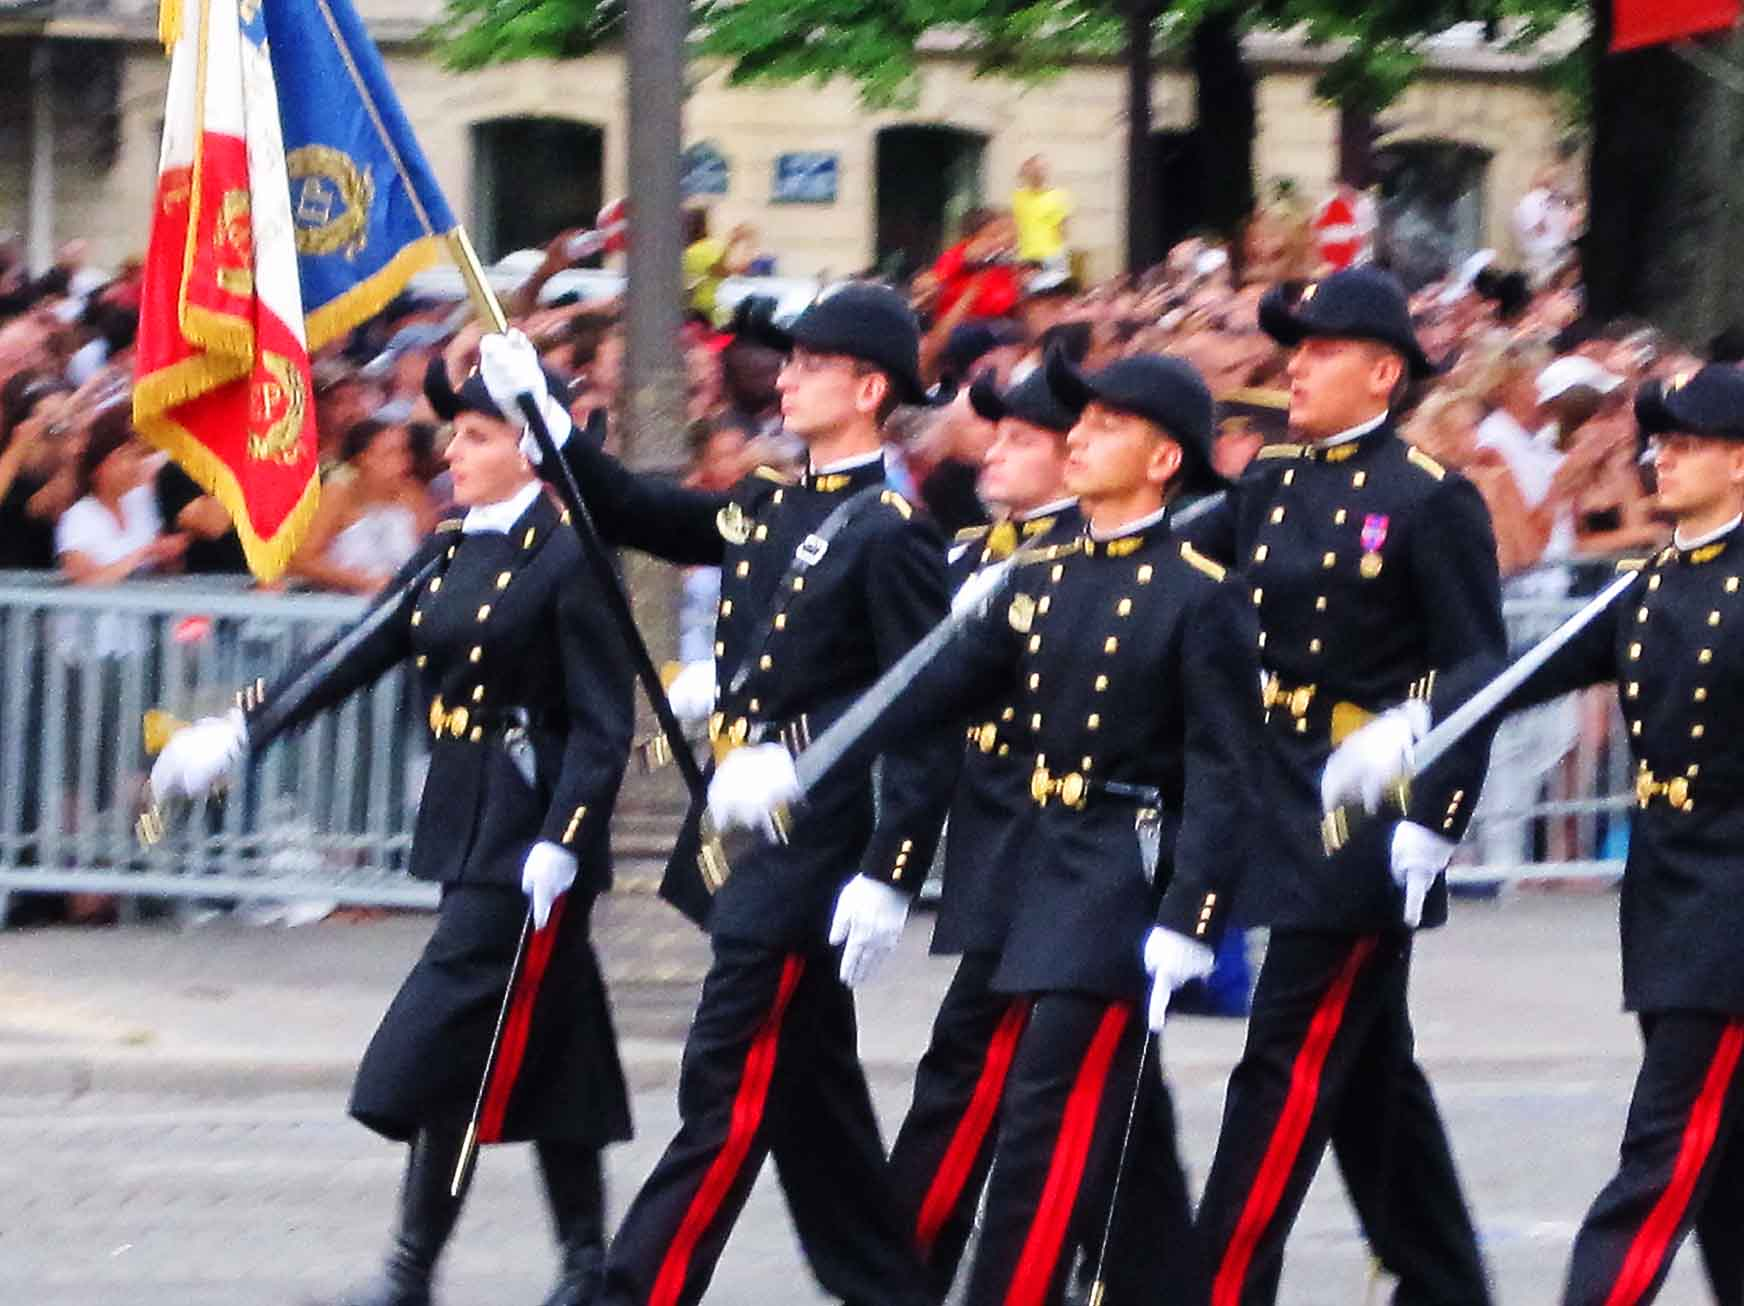 The Bastille Day Parade, Paris, July 14, 2010